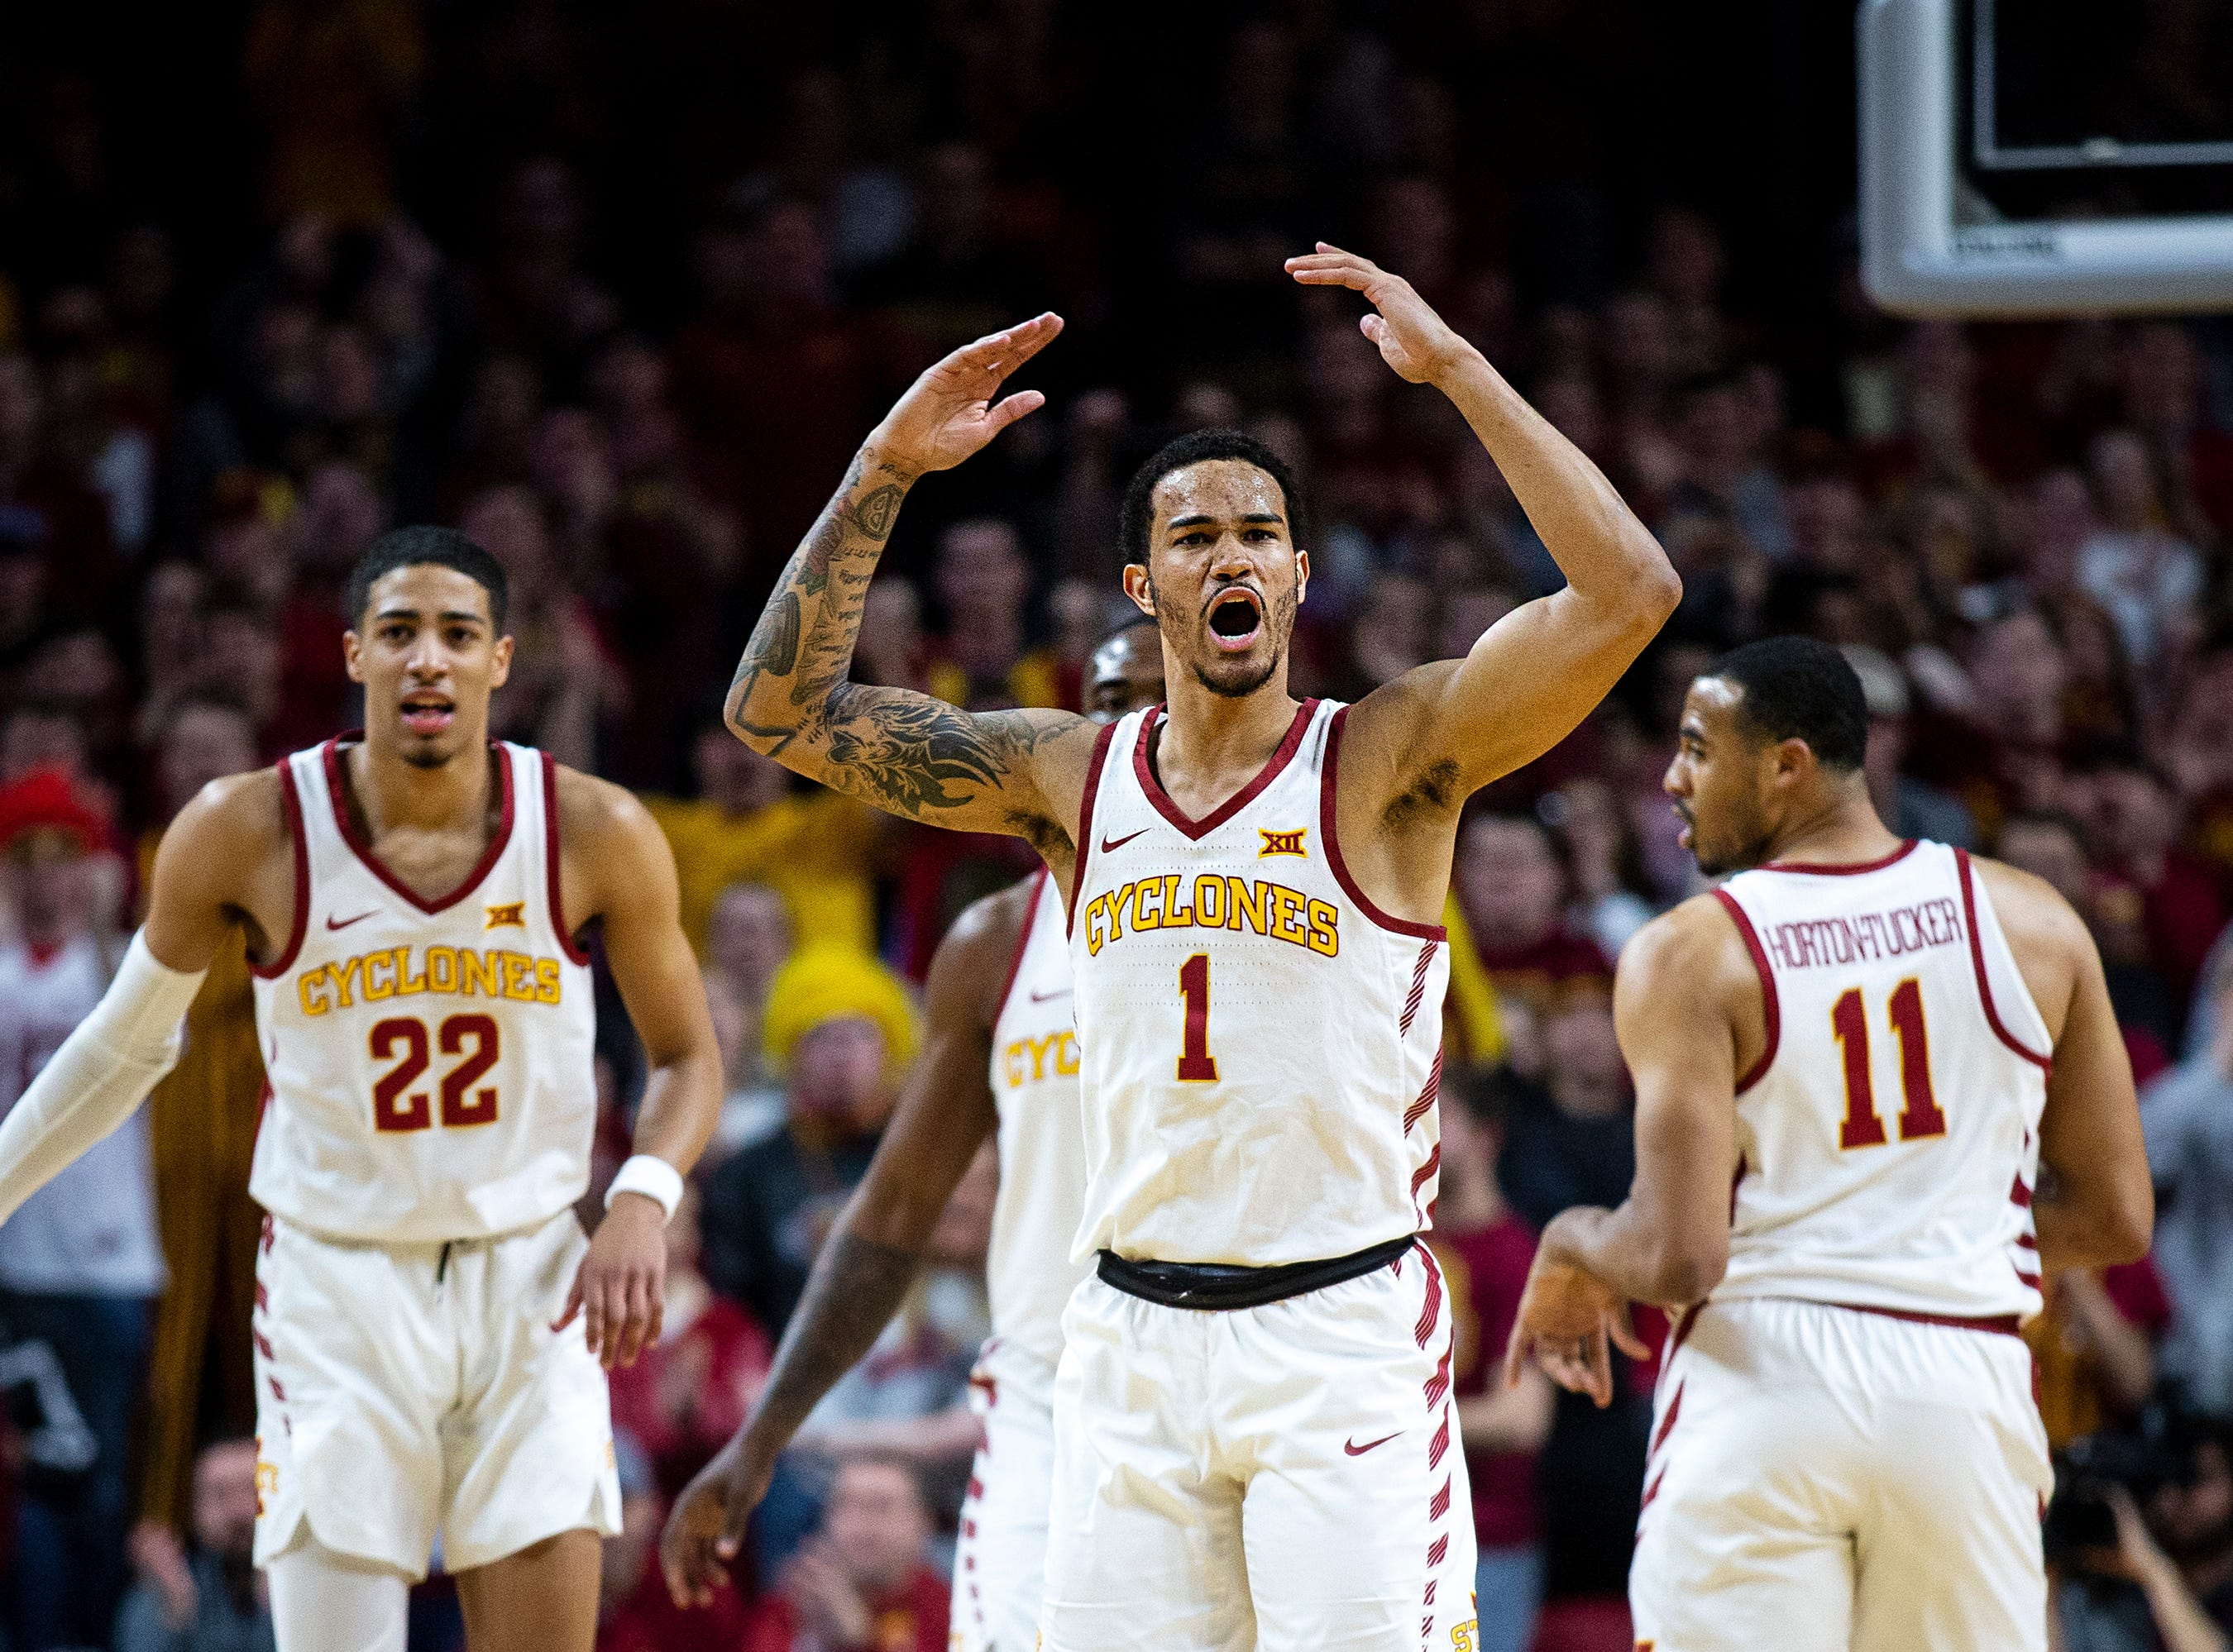 Iowa State's Nick Weiler-Babb tries to get the crowd into the game during the Iowa State men's basketball game against Baylor on Tuesday, Feb. 19, 2019, in Hilton Coliseum. The Cyclones fell to the Bears 69-73.